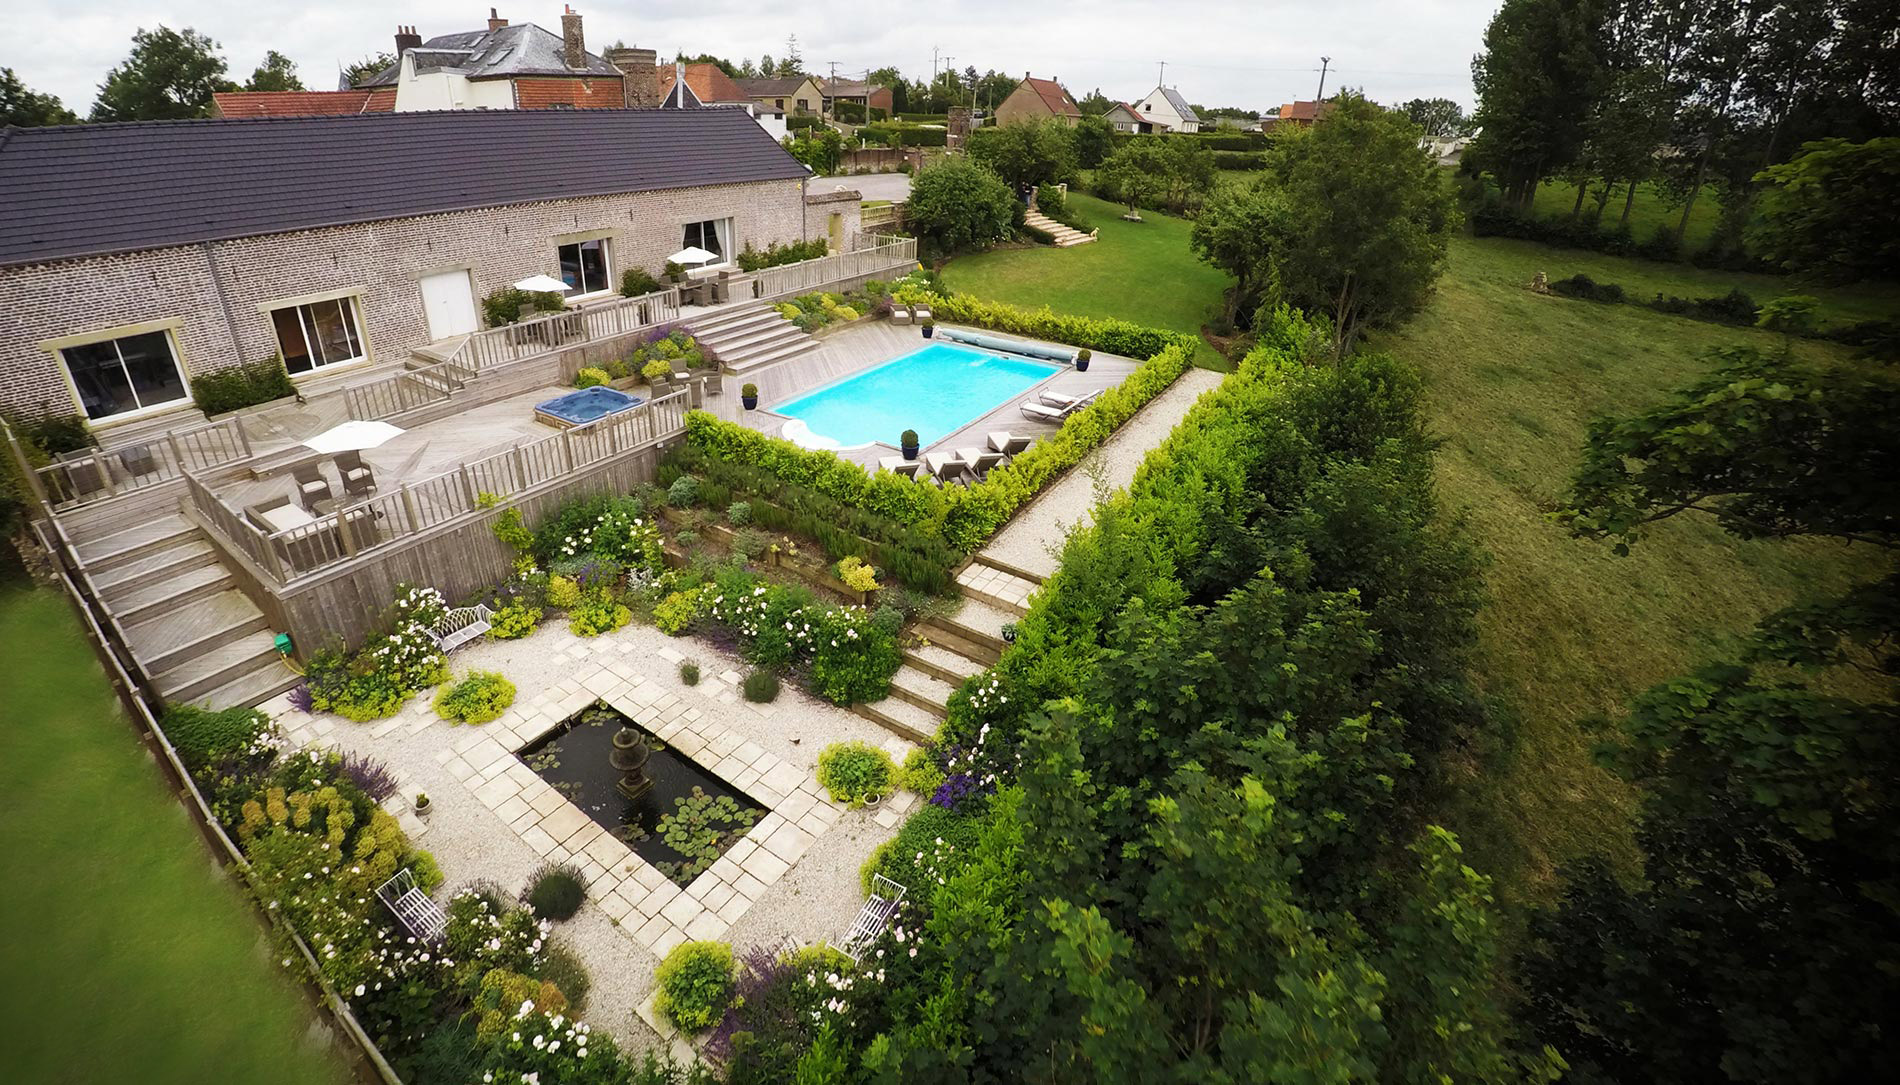 Luscious flowering garden with outdoor heated swimming pool, jacuzzi, Koi pond and lawn area big enough for Marquees. Outdoor access to Gym and Sauna from decking area and courtyard